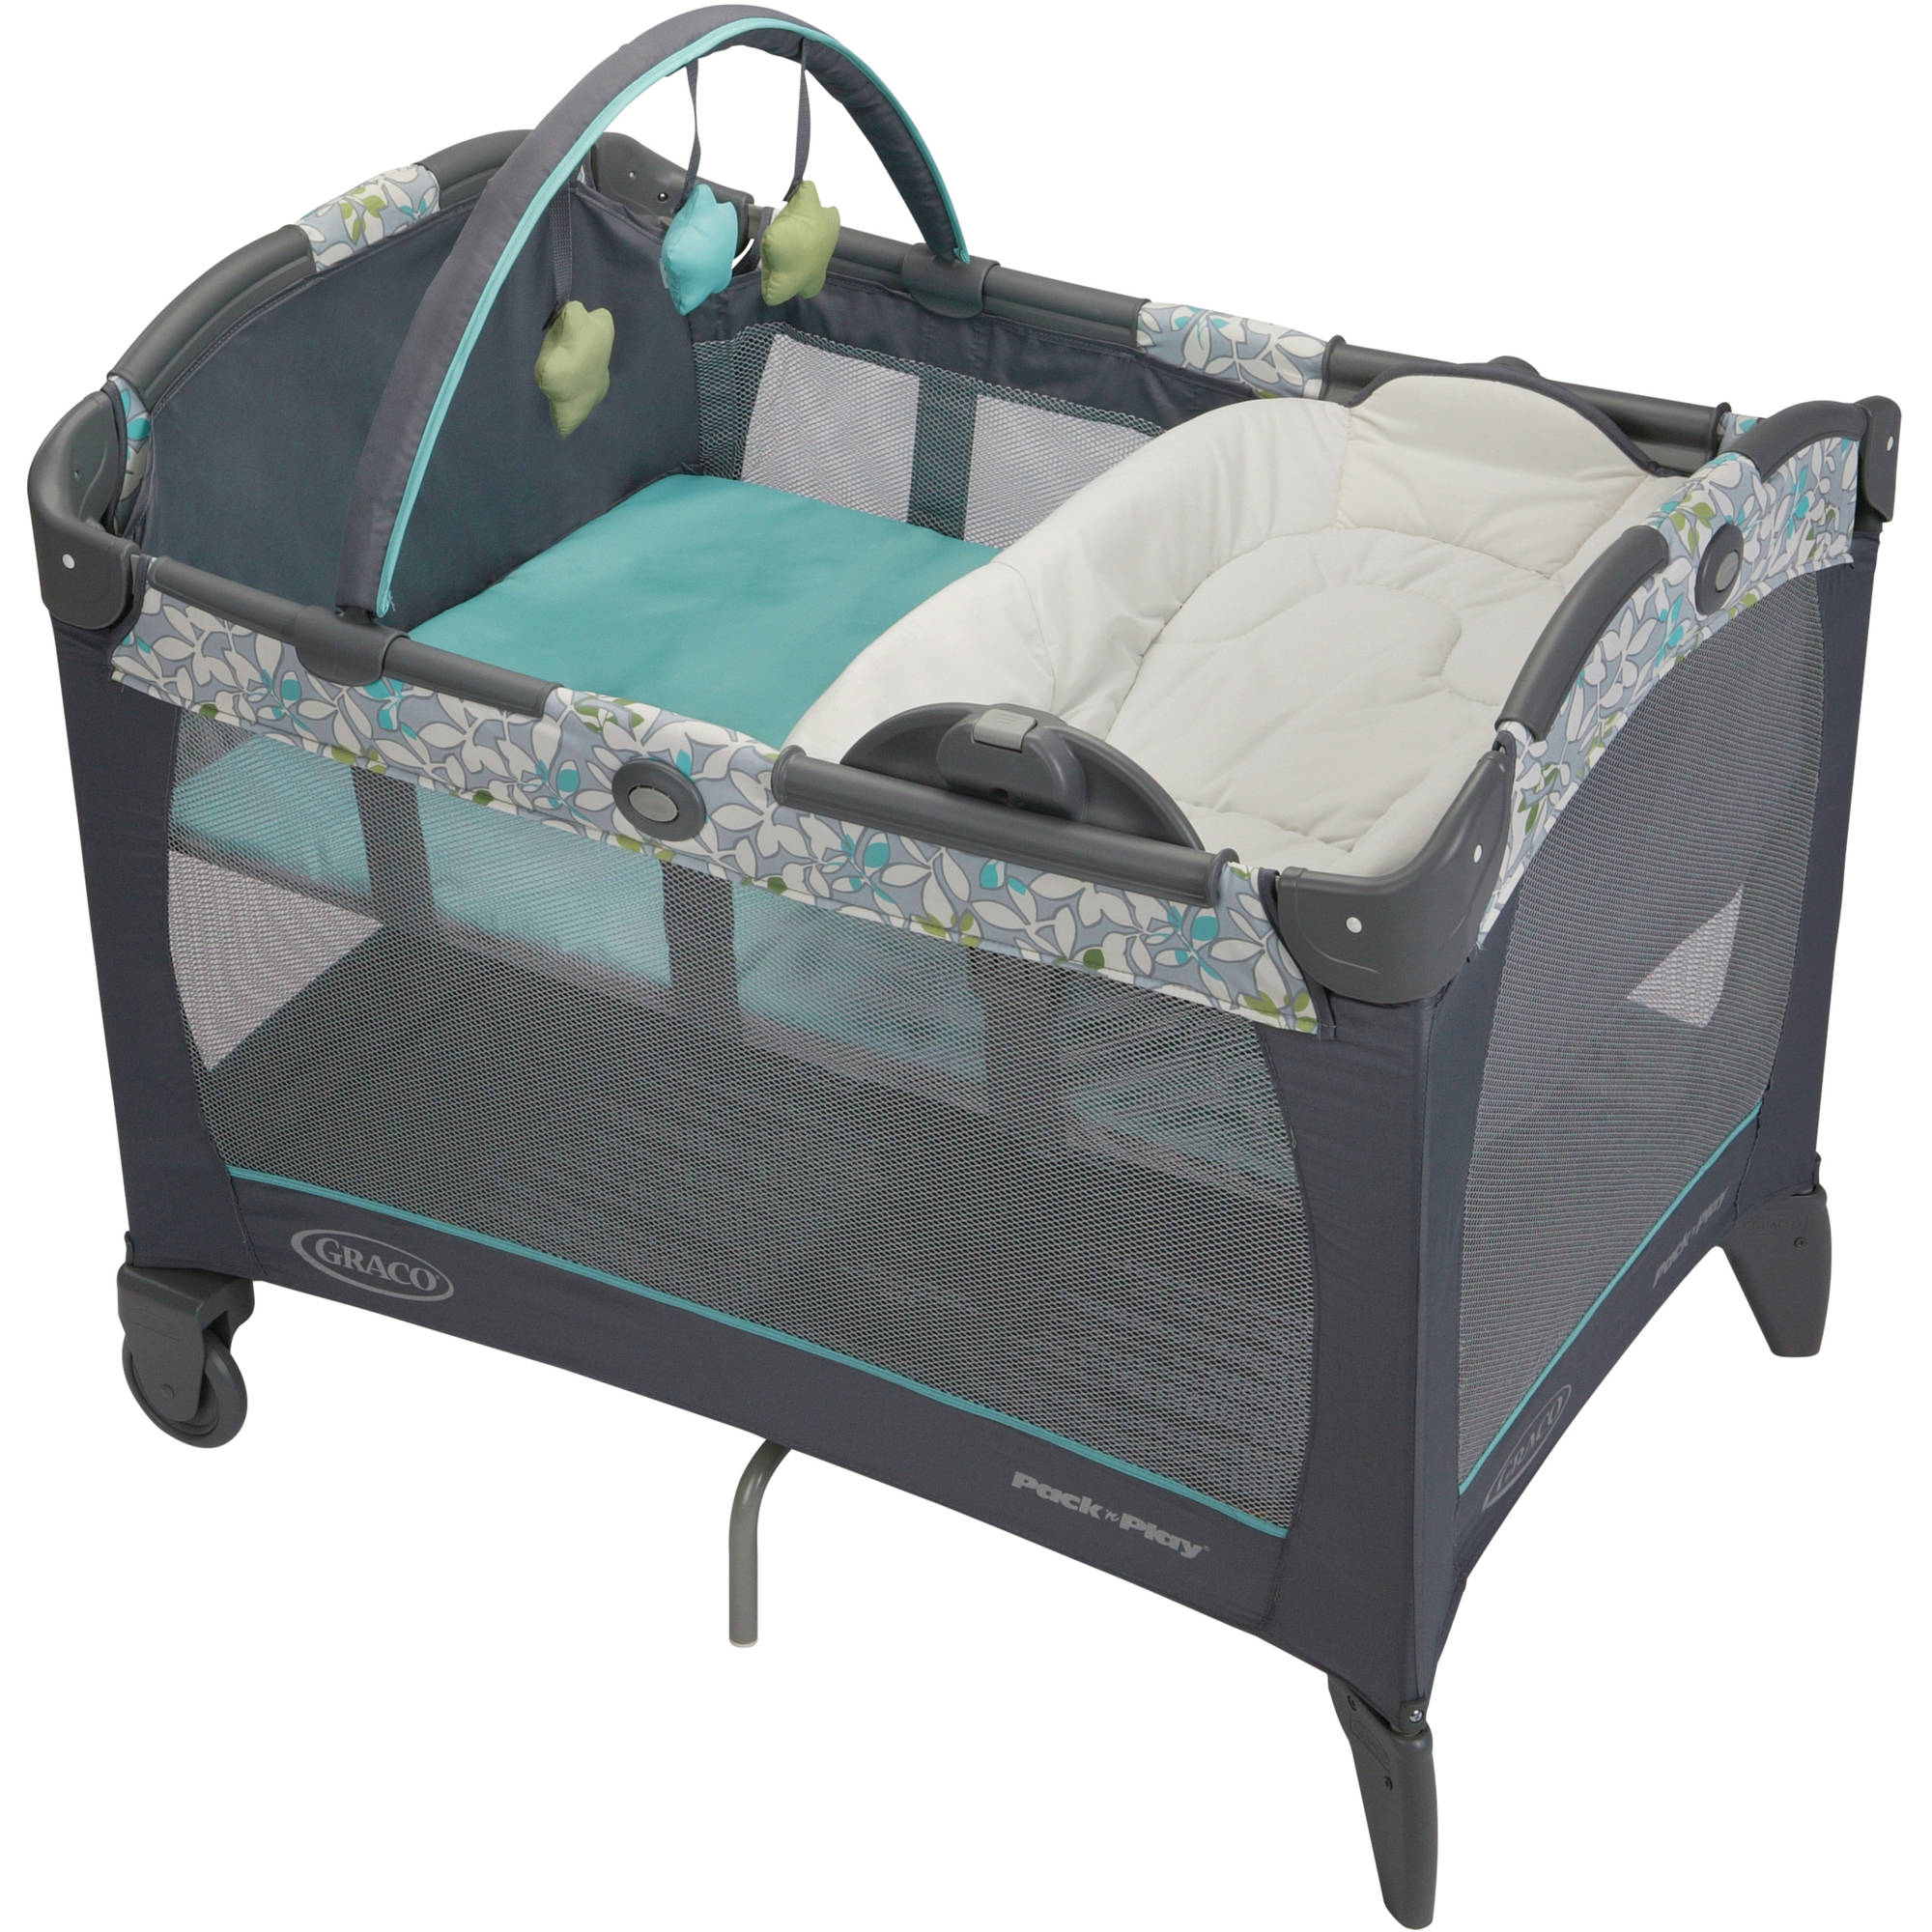 Graco Pack 'N Play Playard with Reversible Napper and Changer, Harvest